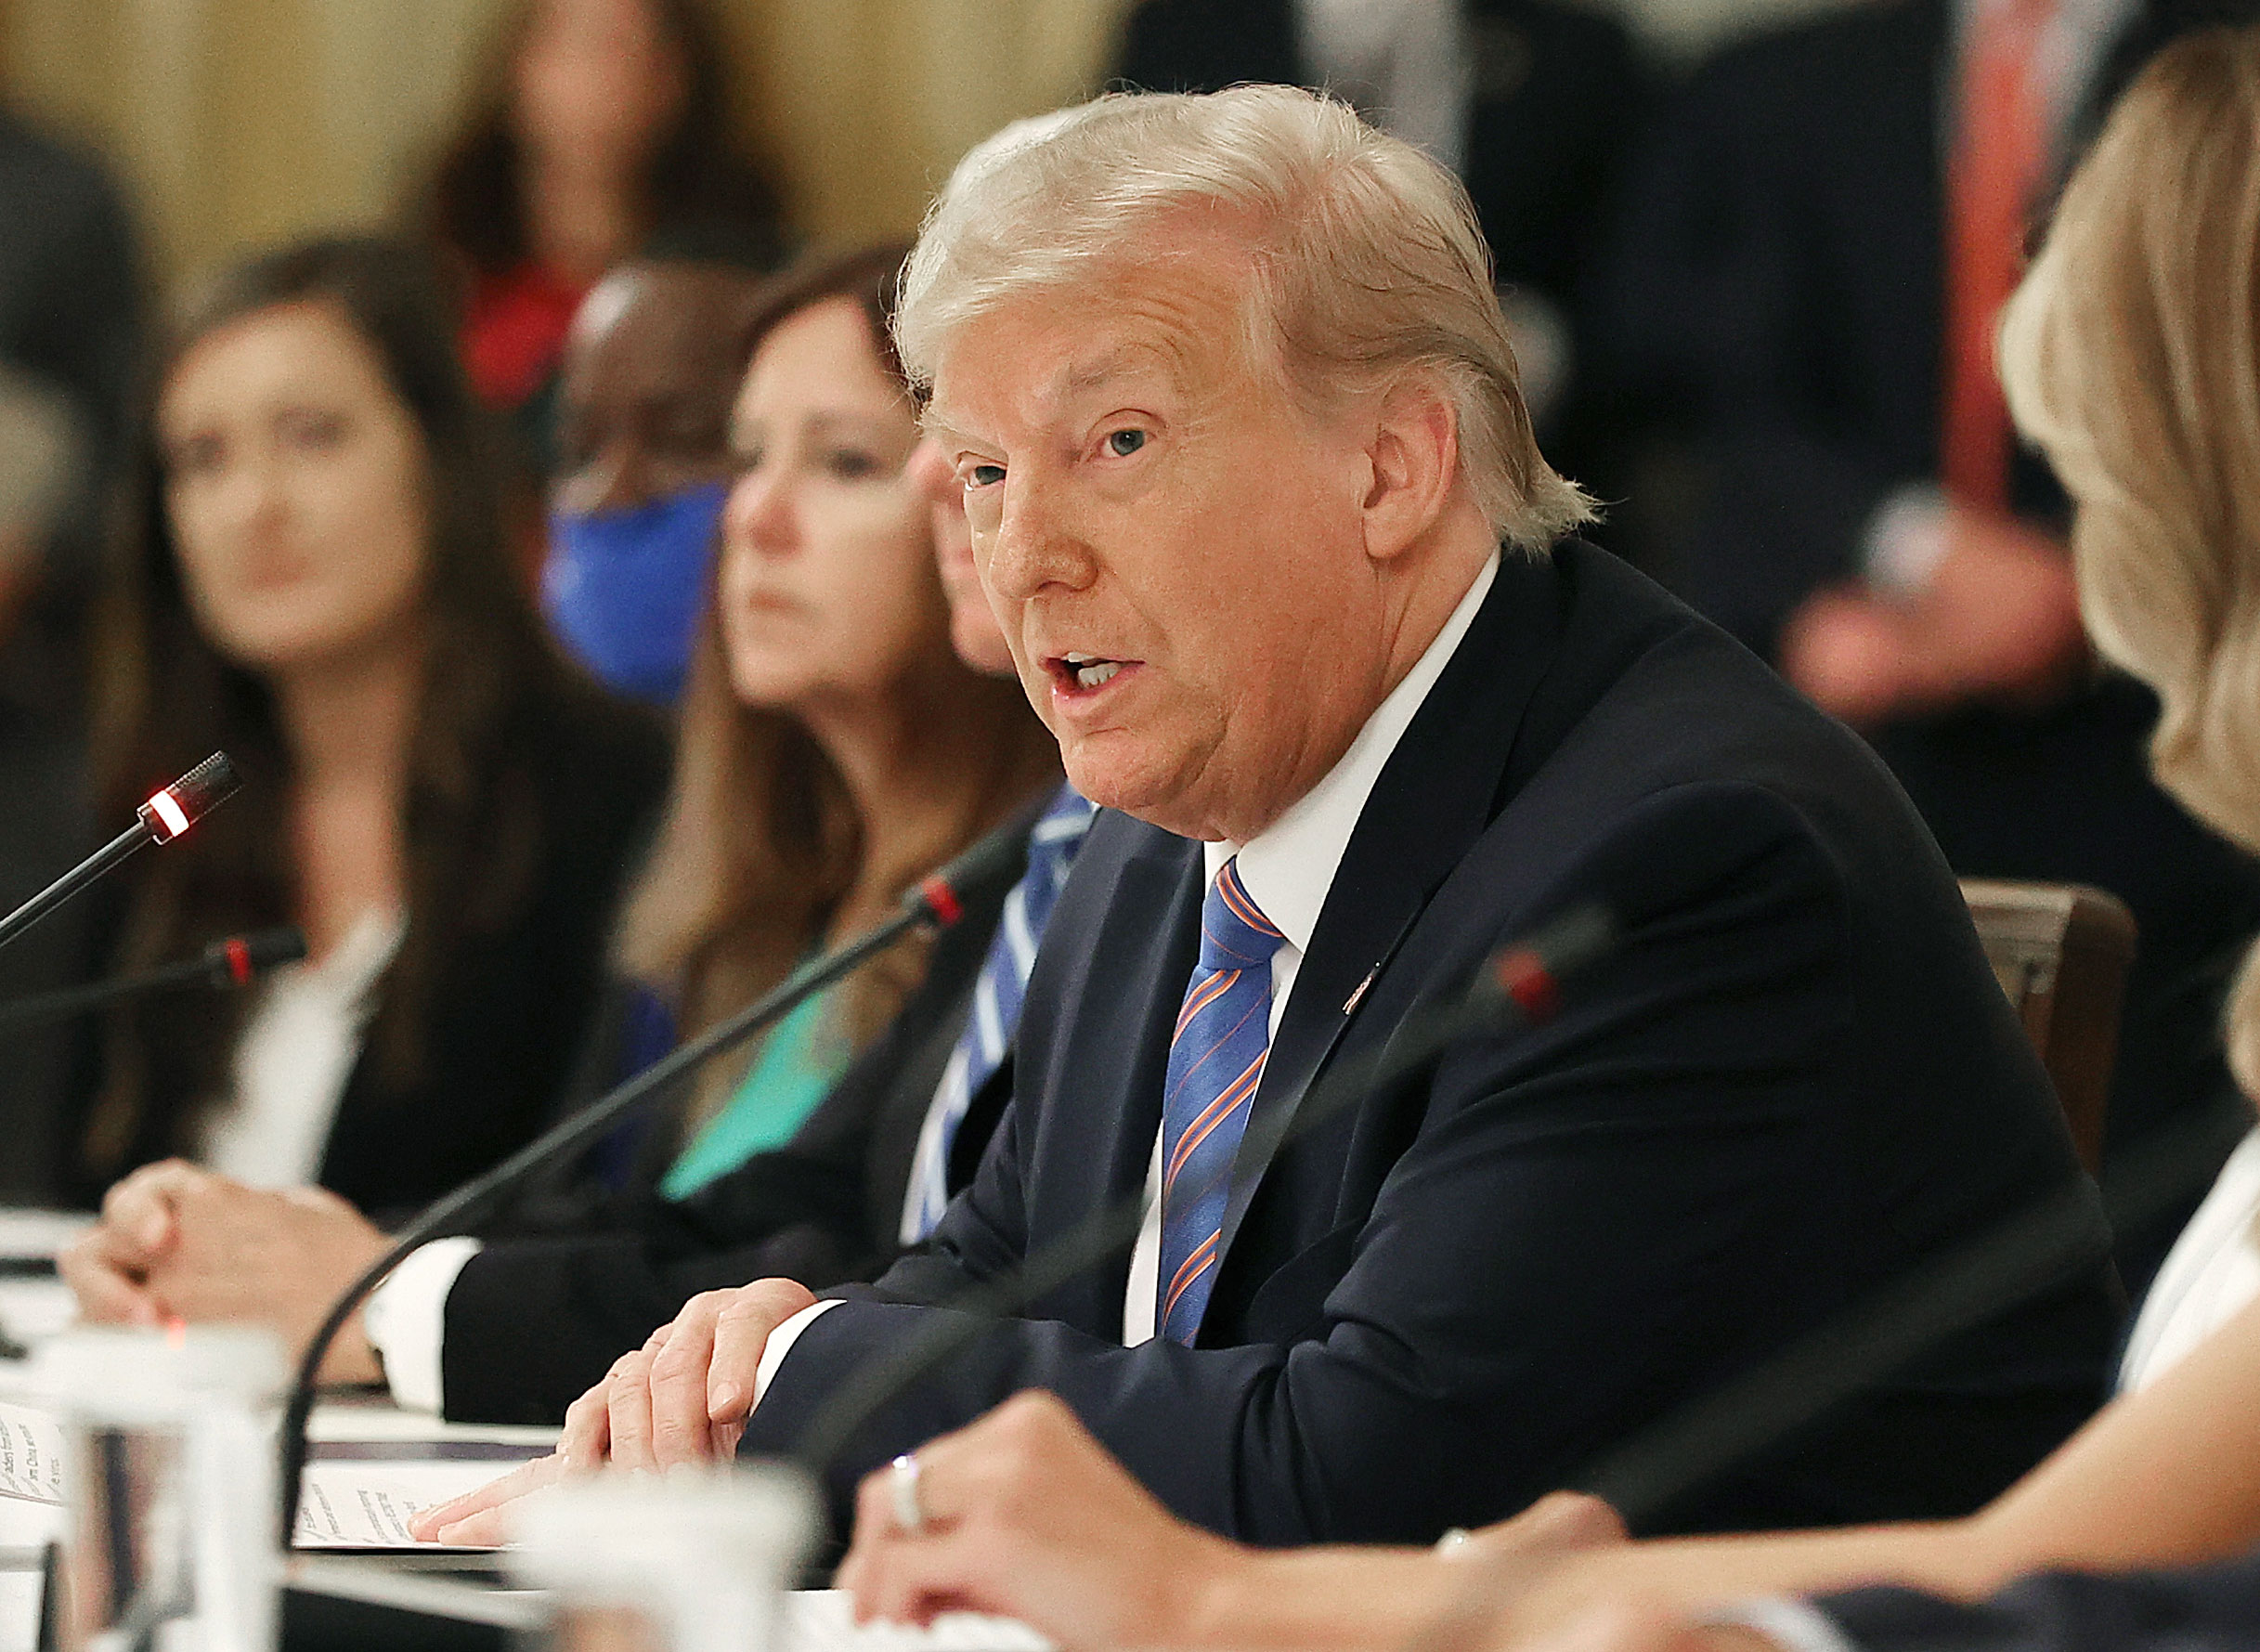 President Donald Trump speaks during an event with students, teachers and administrators about how to safely re-open schools in the East Room at the White House July 7 in Washington, DC.